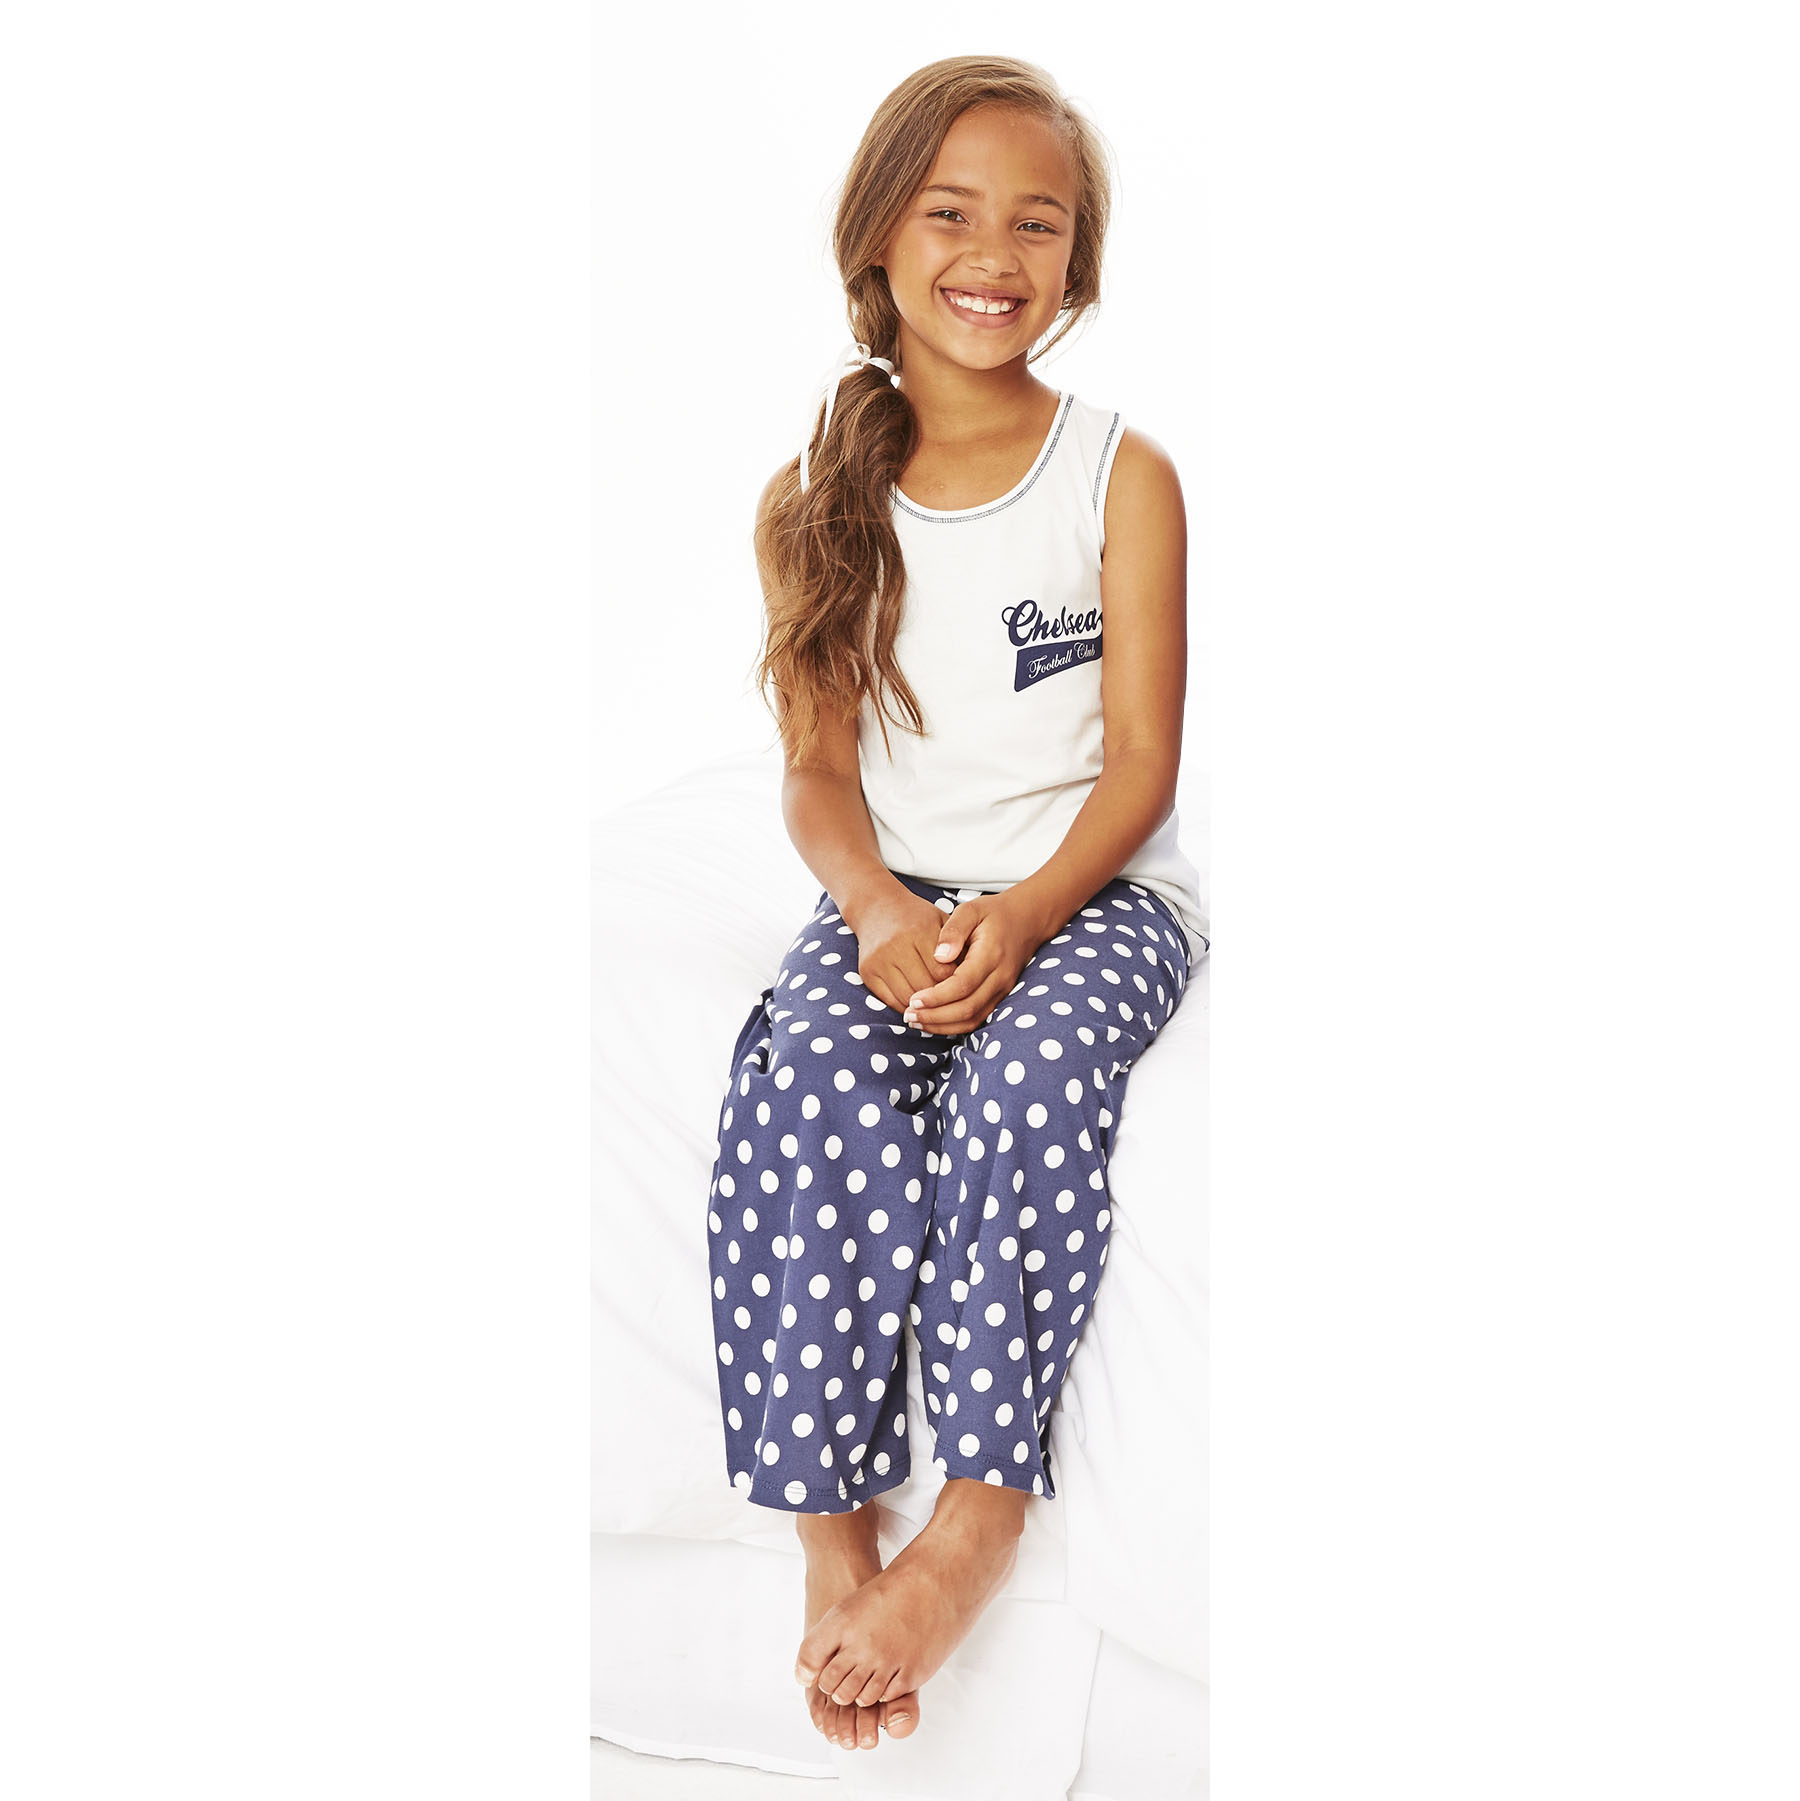 Chelsea Spotty Pyjamas - Ecru/Navy - Older Girls